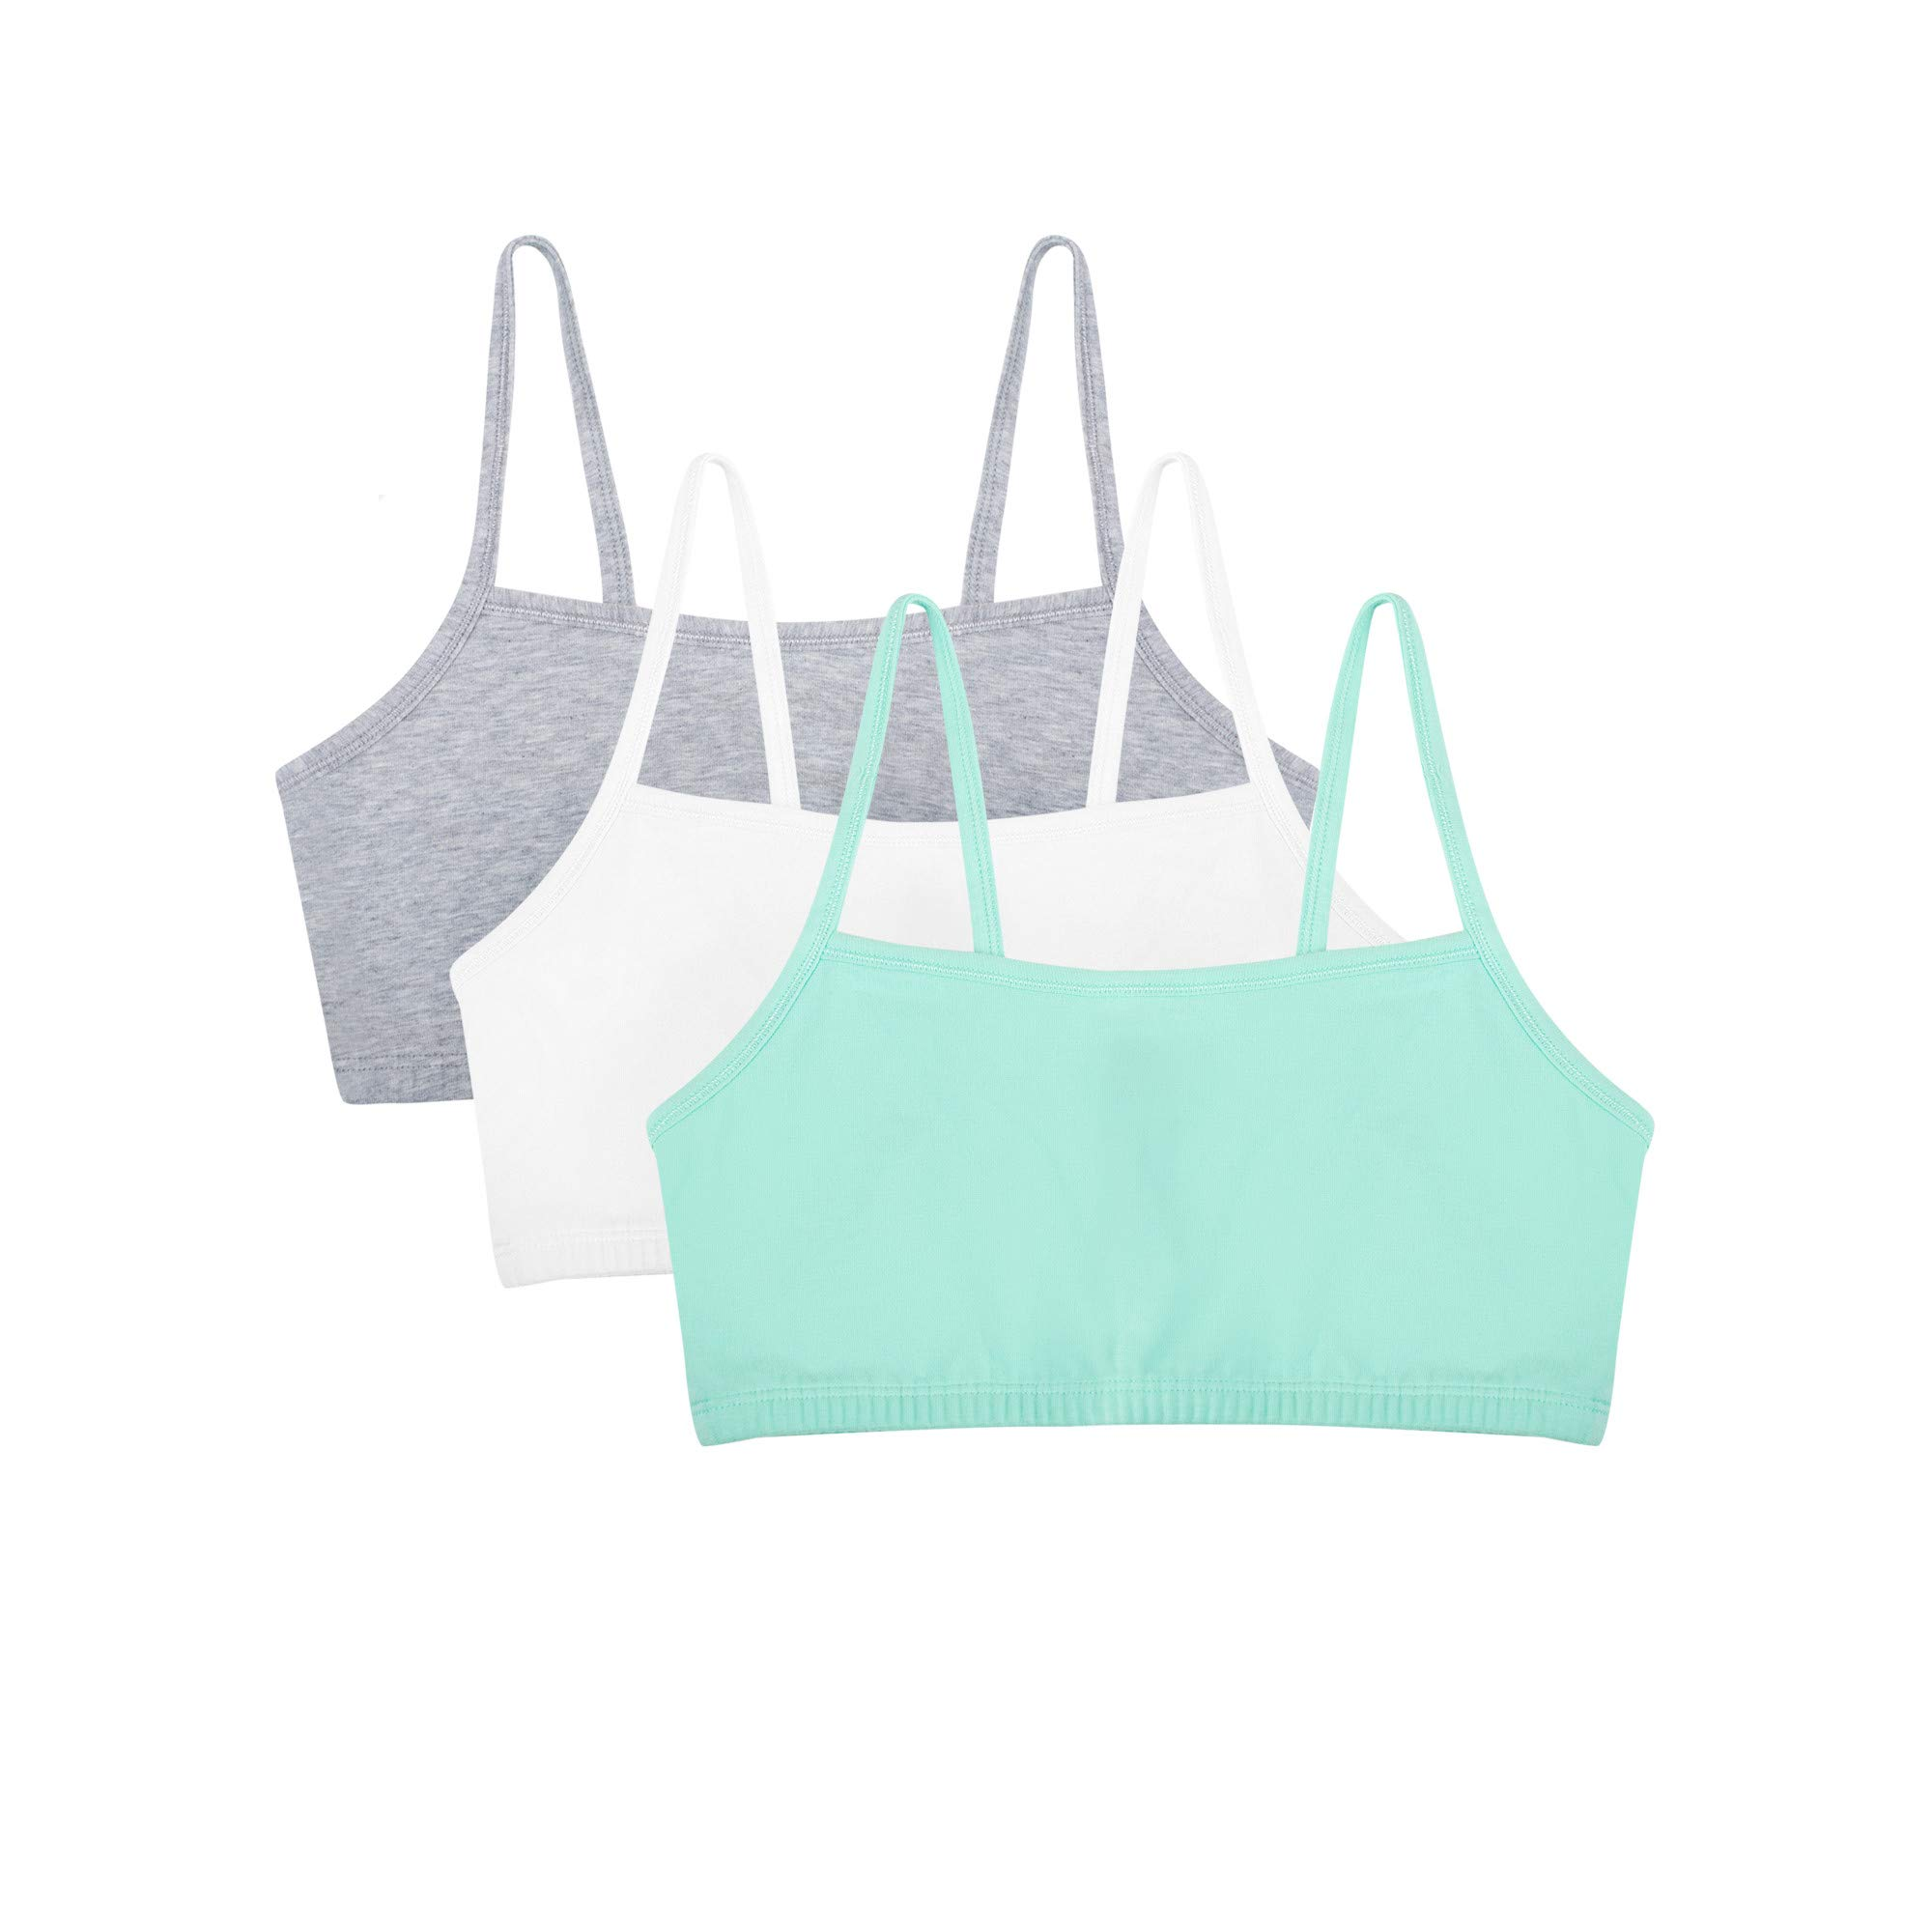 Fruit of the Loom womens Cotton Pullover Sport Bra, mint chip/white/grey heather 34 by Fruit of the Loom